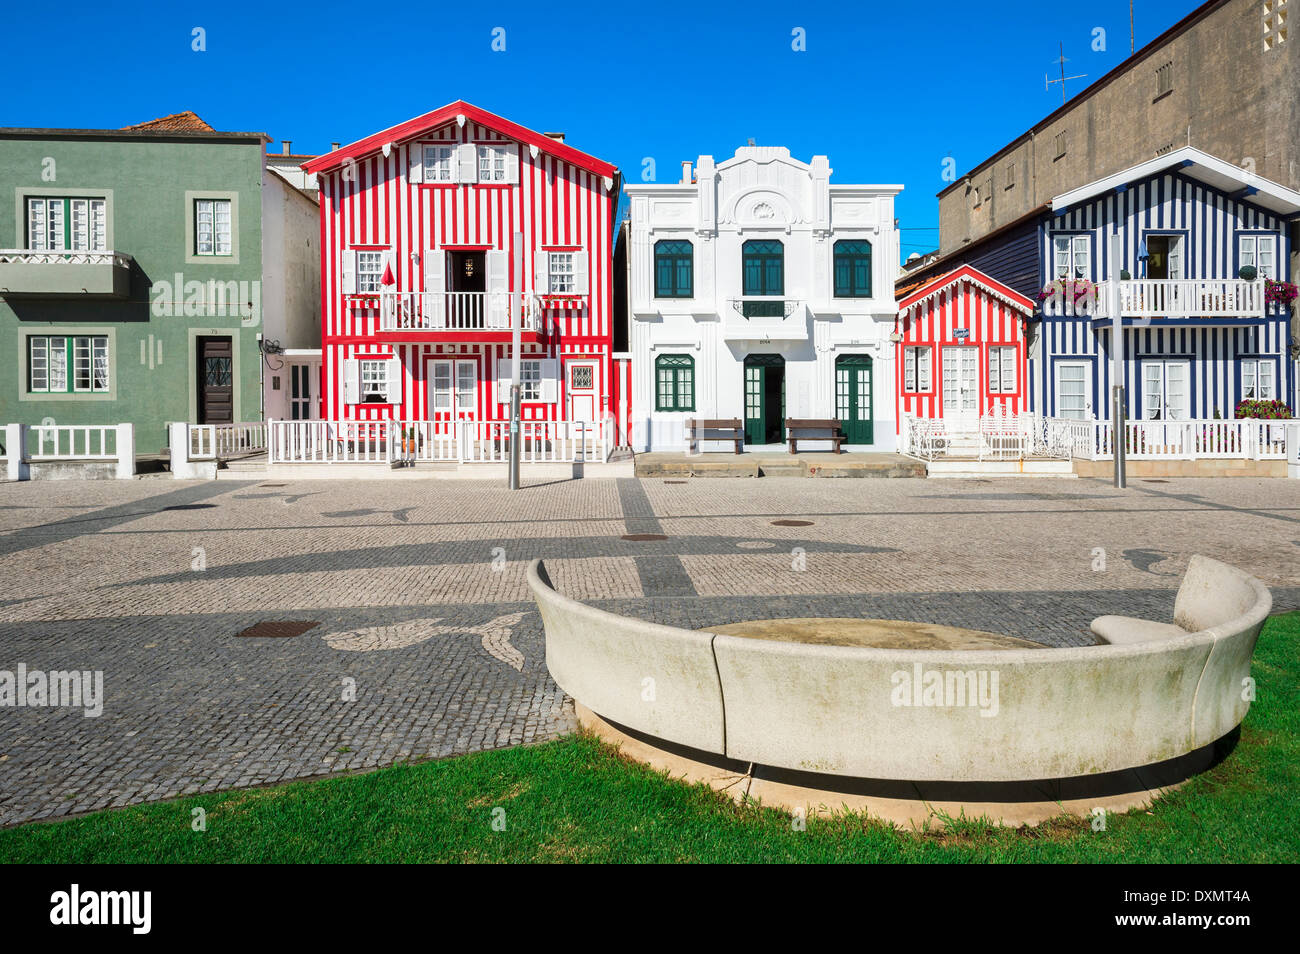 Palheiros, Typical colorful houses, Costa Nova, Aveiro, Beira, Portugal Stock Photo